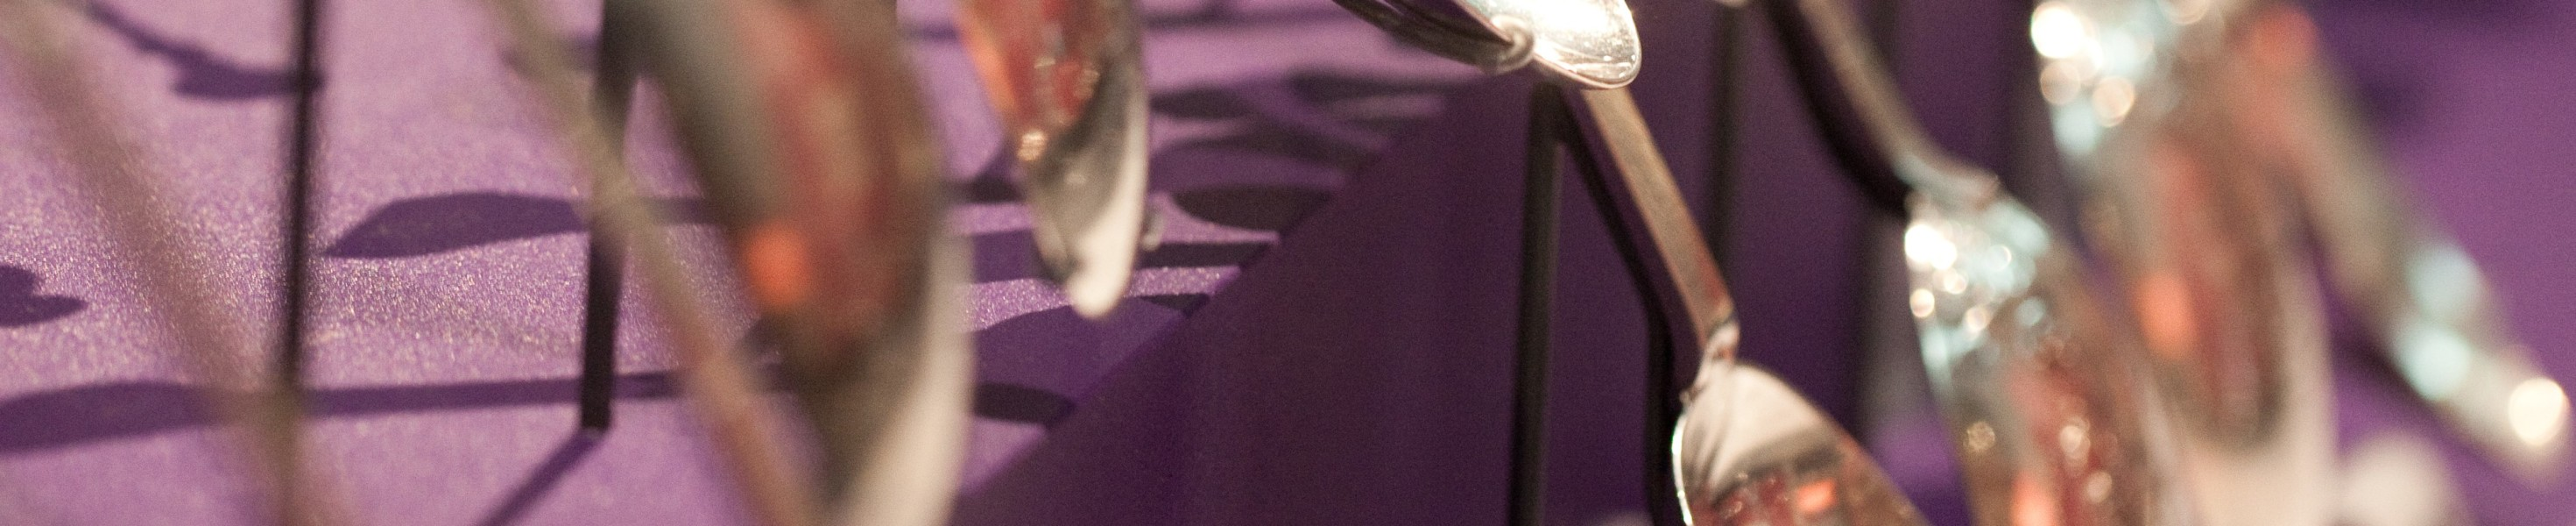 Image of Displayed silver teaspoon - cropped to abstract banner